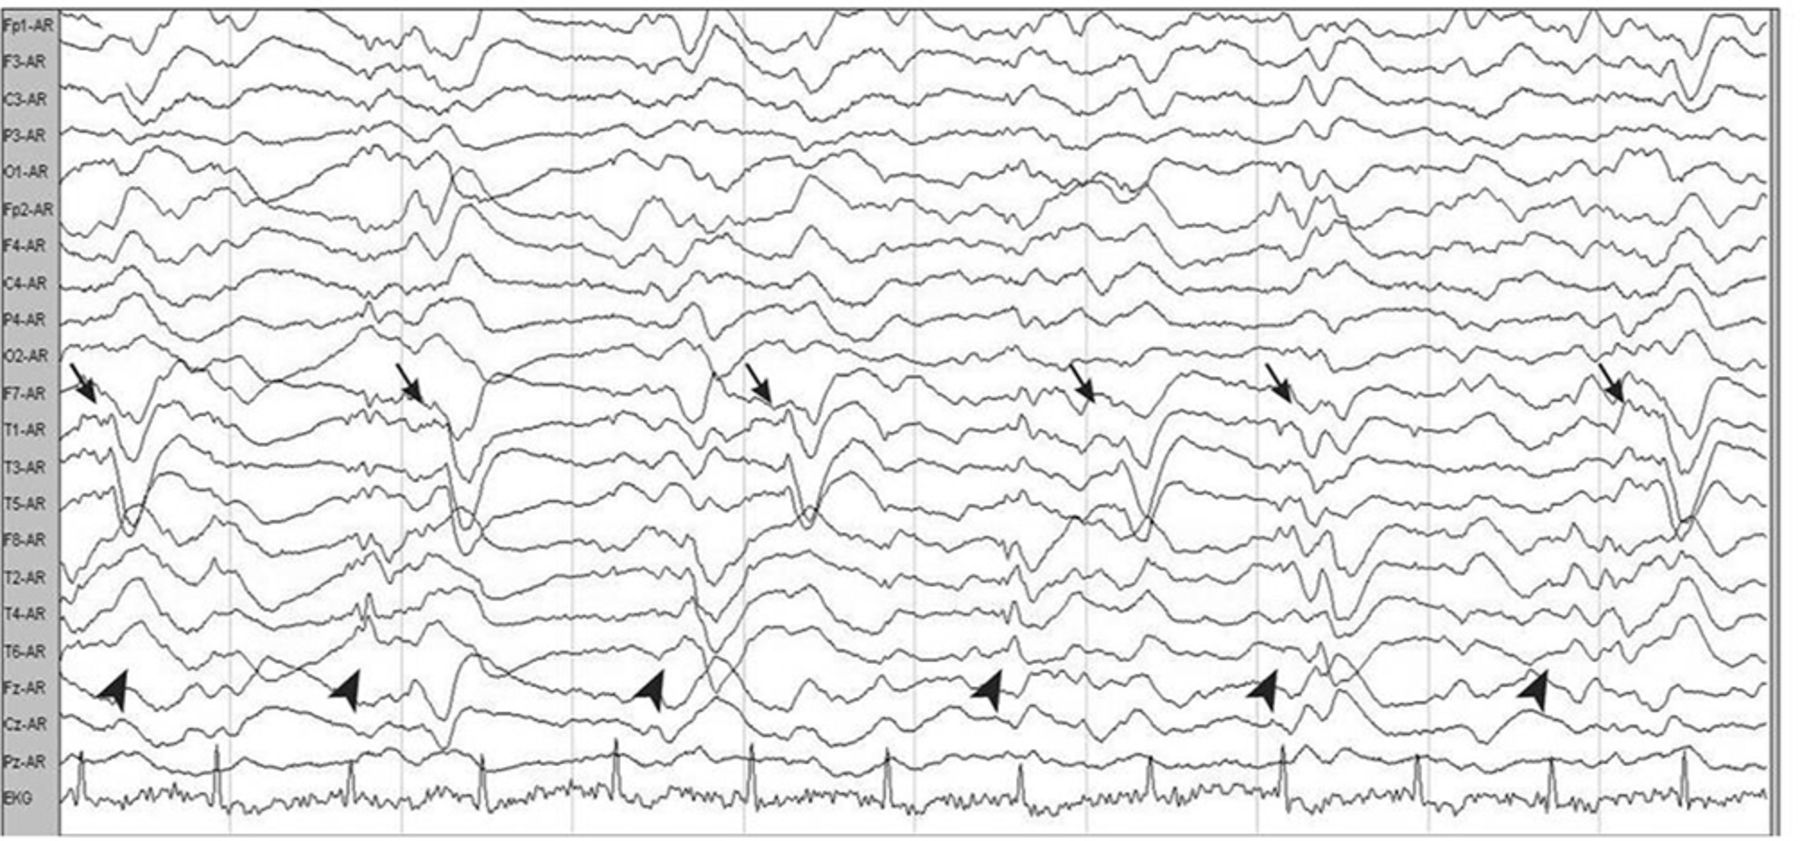 Bilateral independent periodic lateralised epileptiform